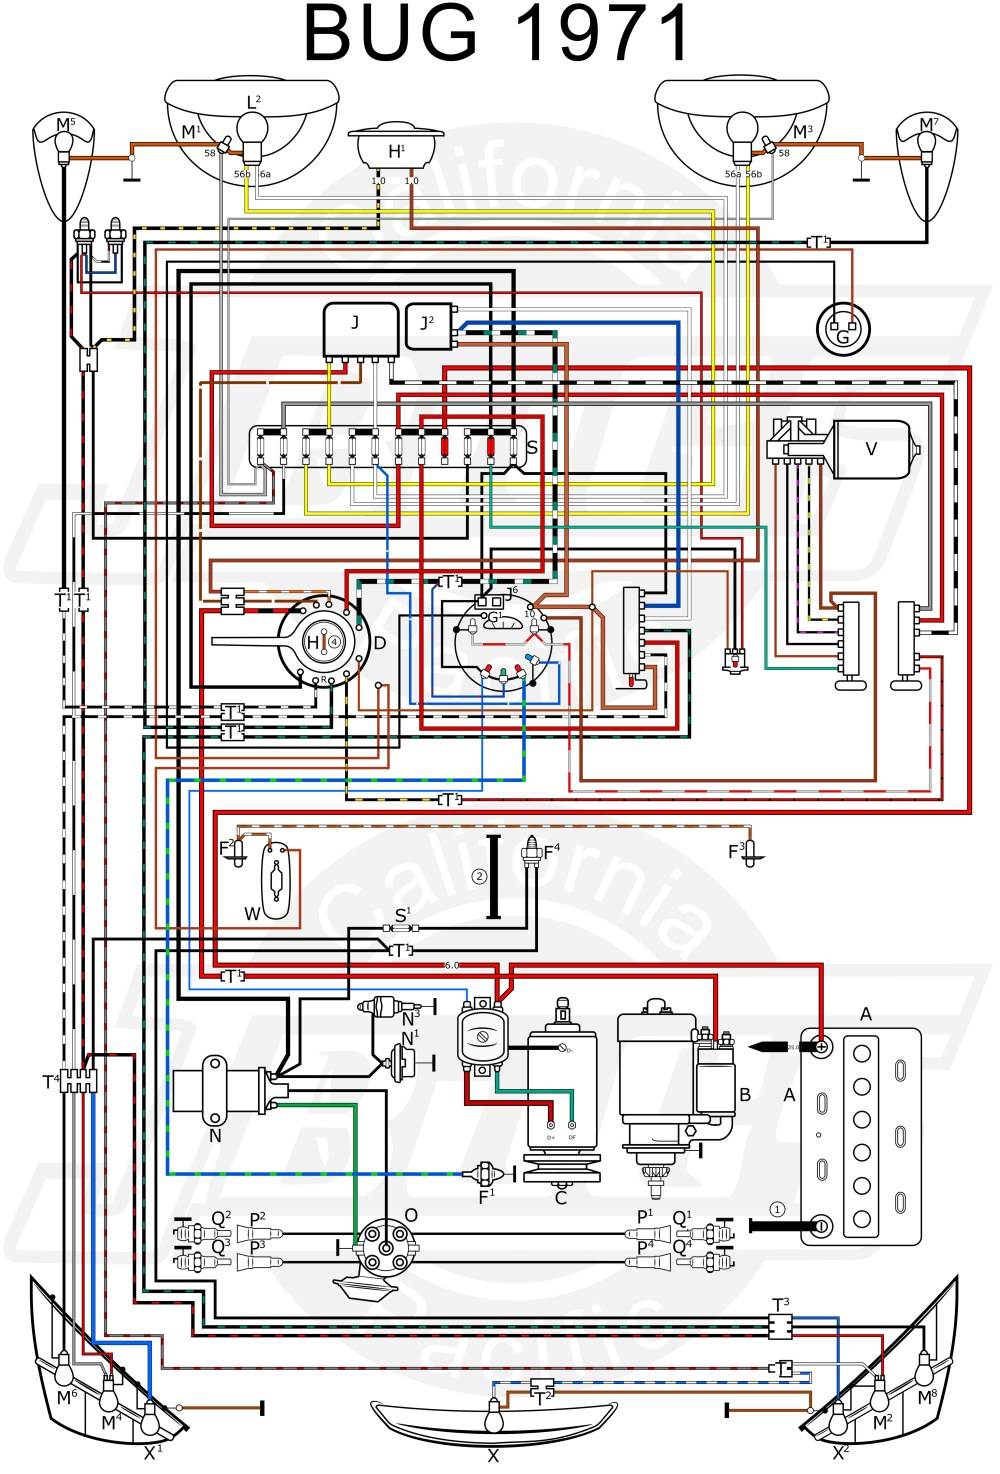 medium resolution of 72 vw engine diagram wiring diagrams schema rh 89 valdeig media de vw 2 0 turbo engine diagram vw 1600 single port